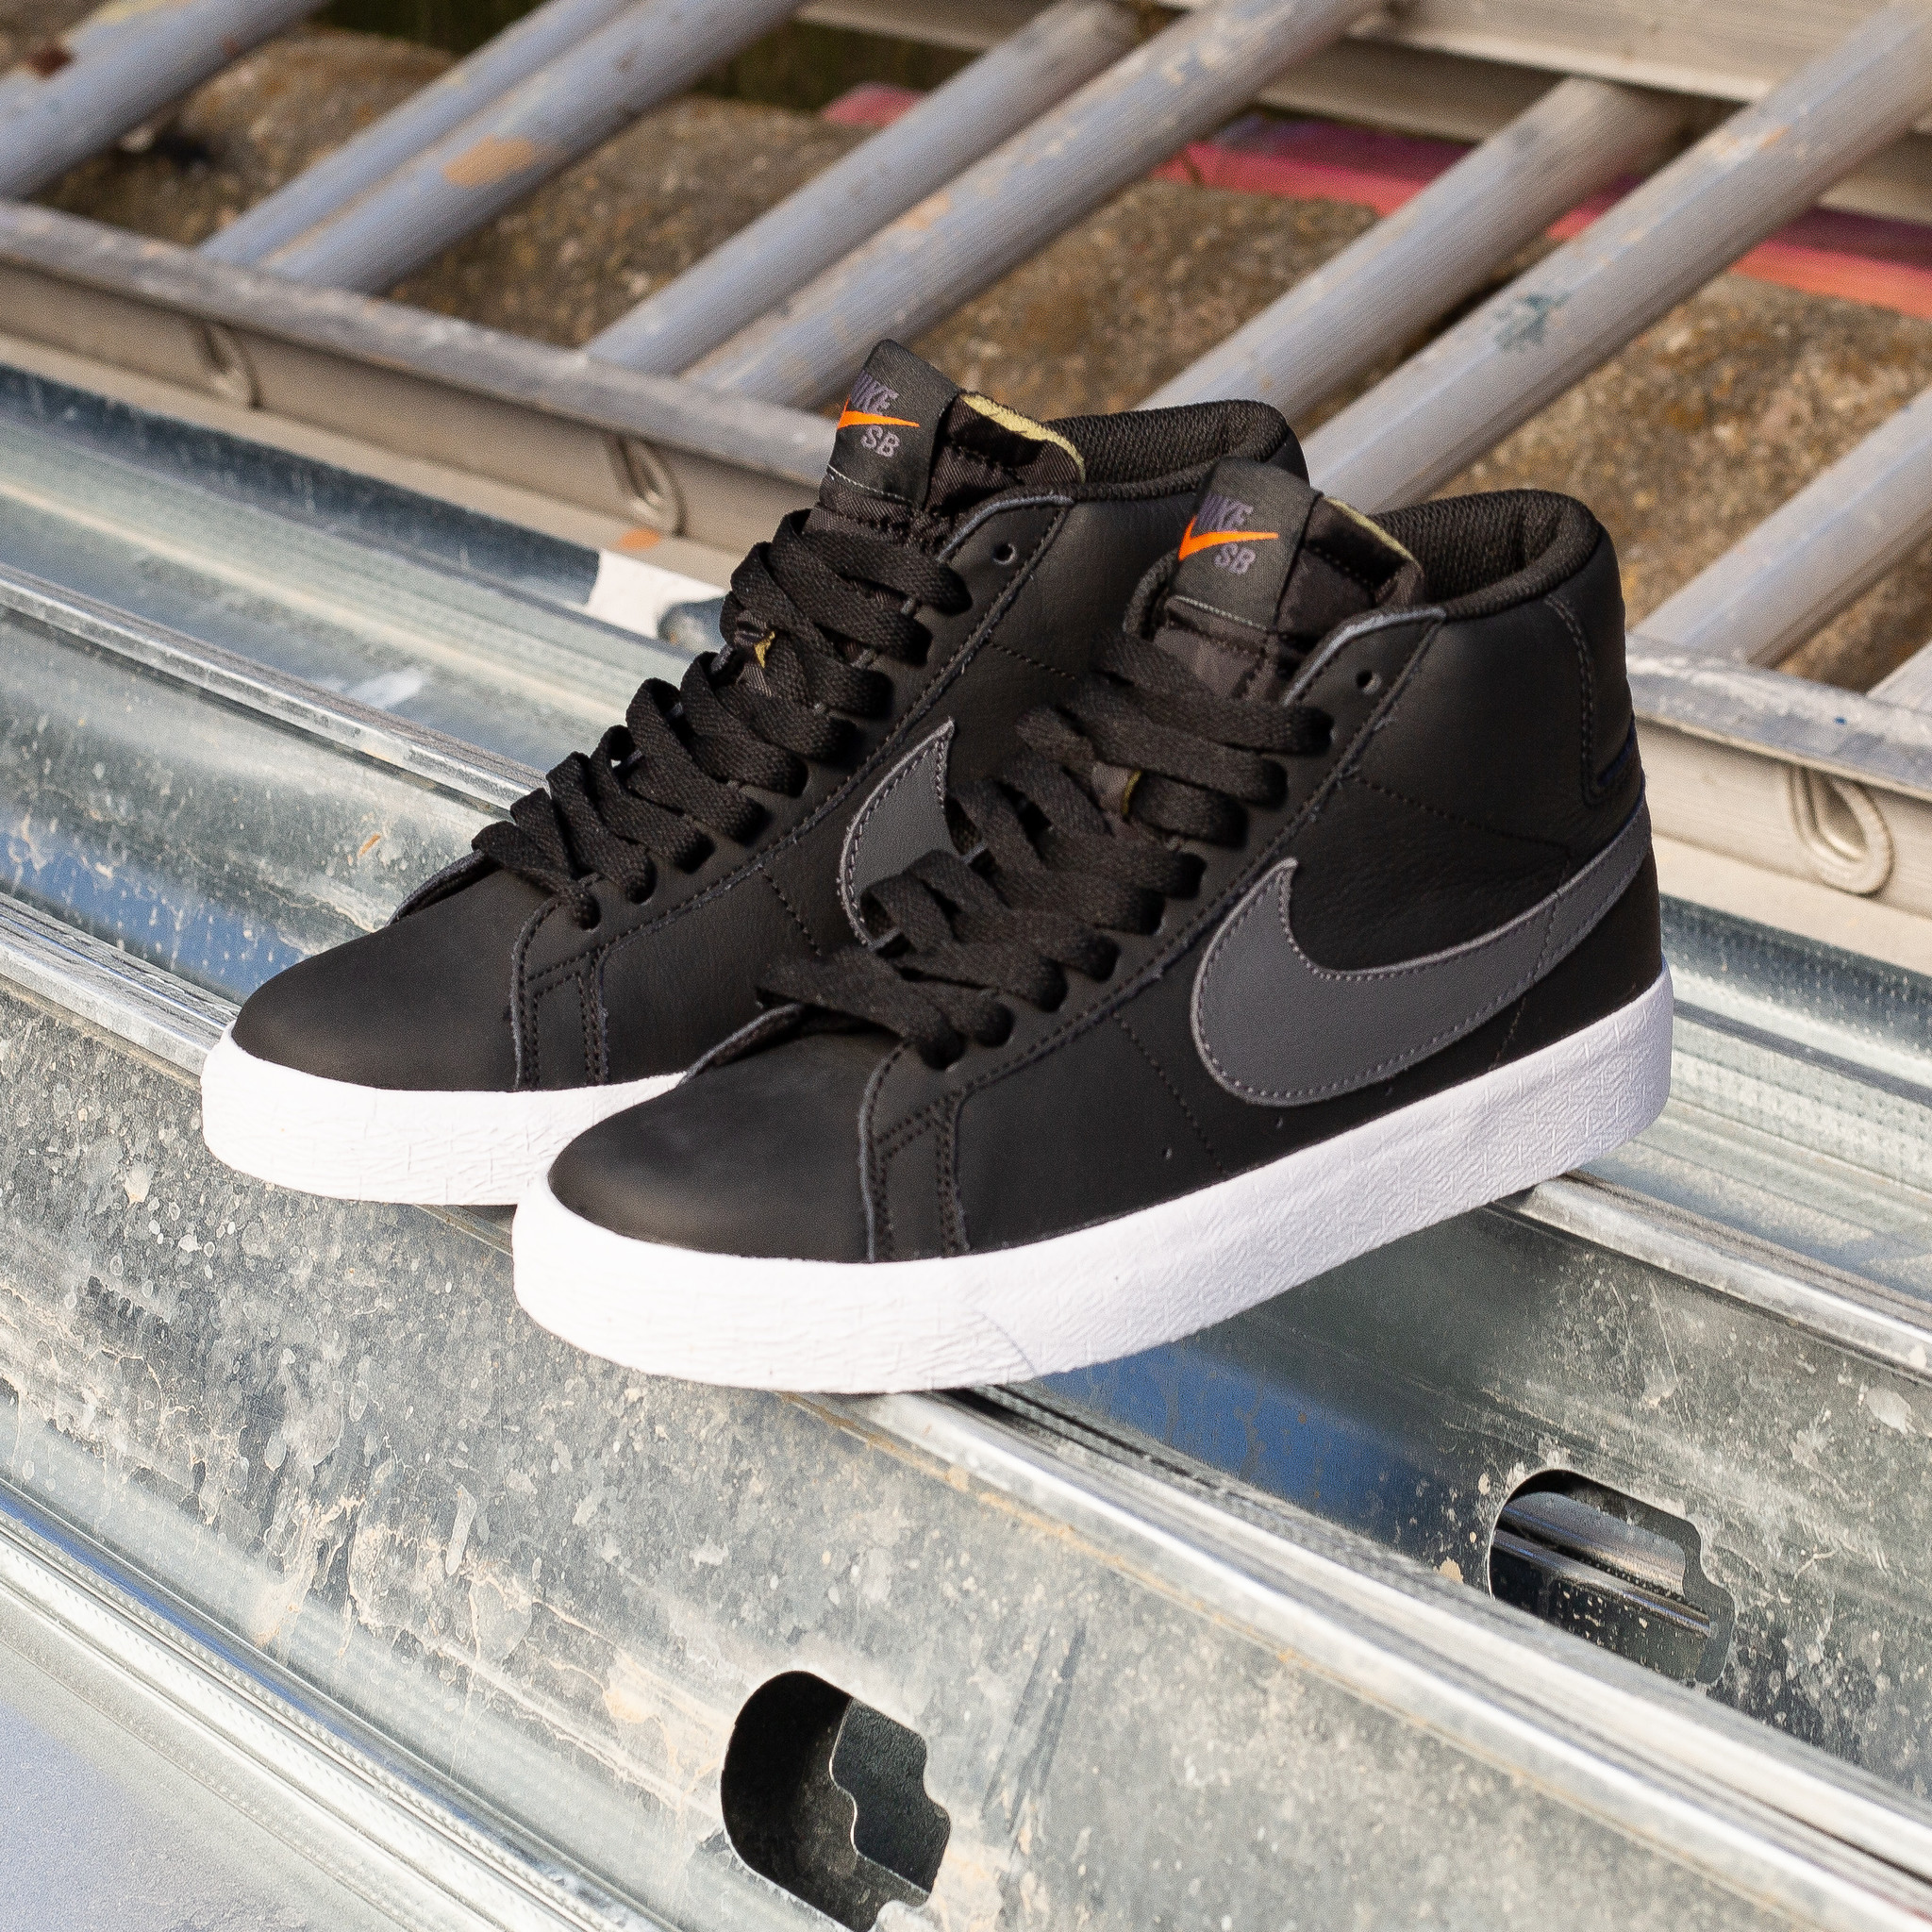 Nike SB Blazer Mid Orange Label Black/Grey